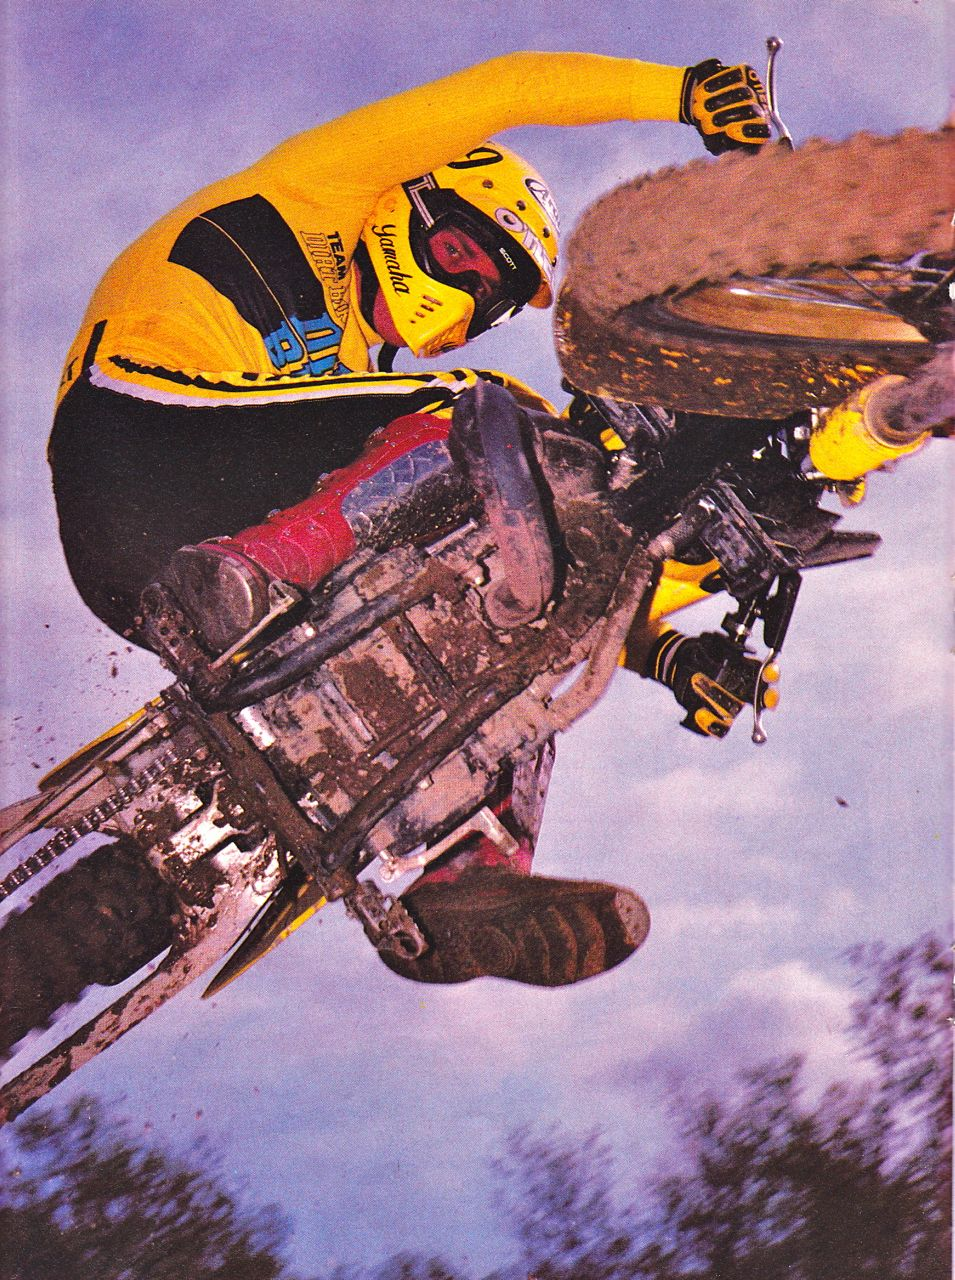 Jim Holley getting all BMX back in the 80s.